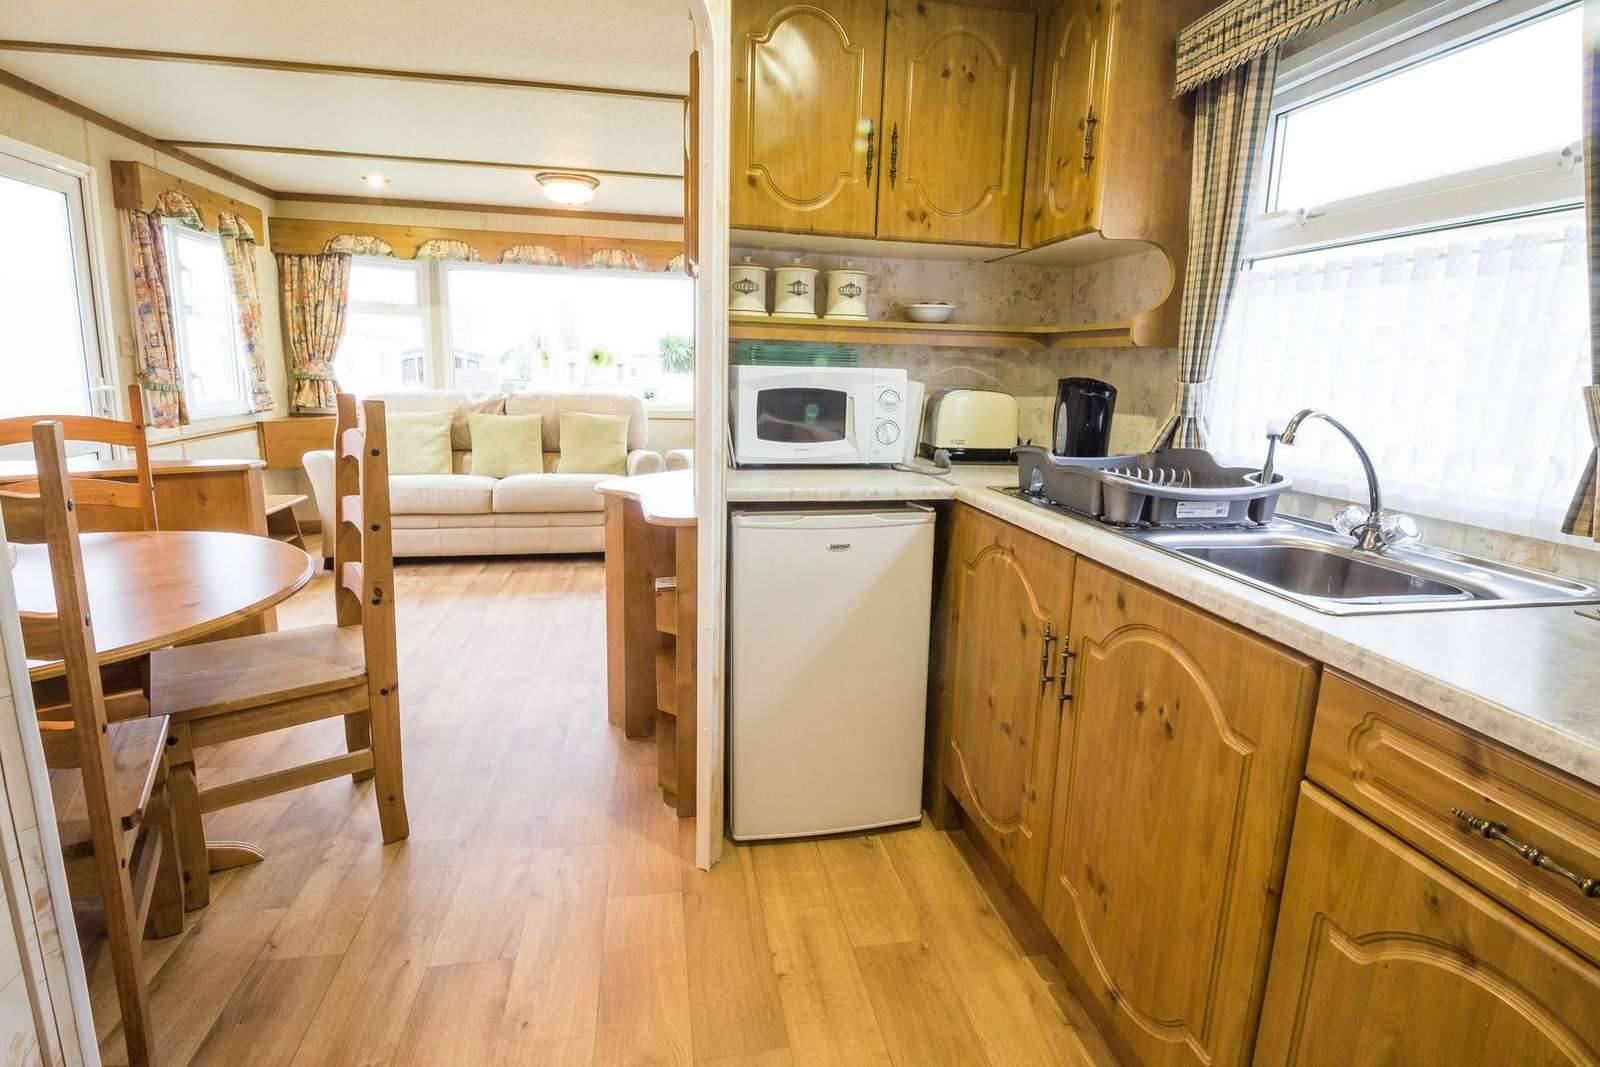 Great kitchen area in this affordable caravan for hire.